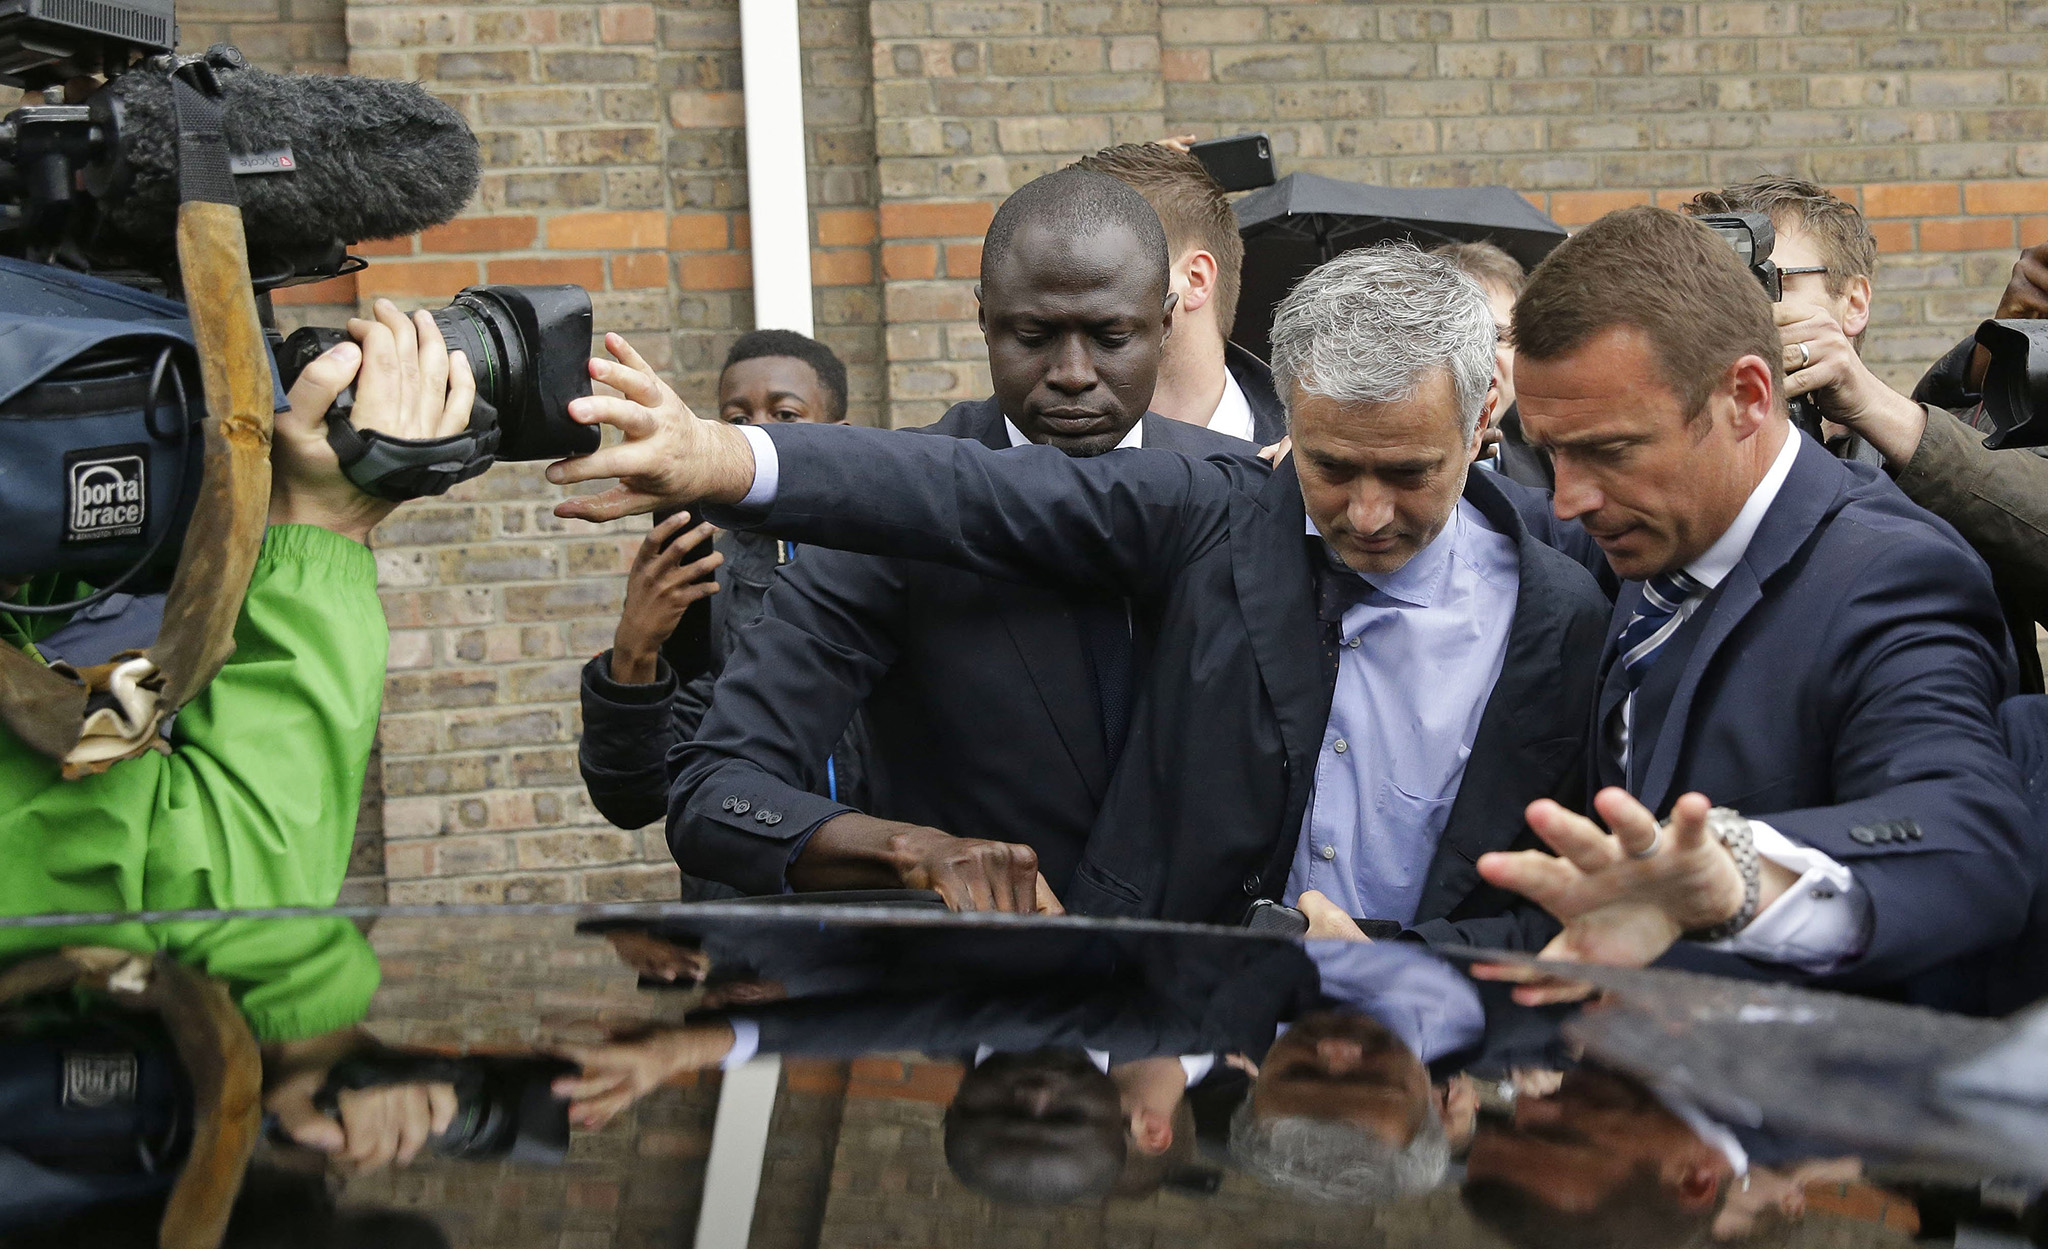 Former manager of Chelsea and current manager of Manchester United Jose Mourinho, centre, tries to get in the back of a car as he leaves after attending an employment tribunal for former Chelsea team doctor Eva Carneiro at the Croydon Employment Tribunal in Croydon, south London